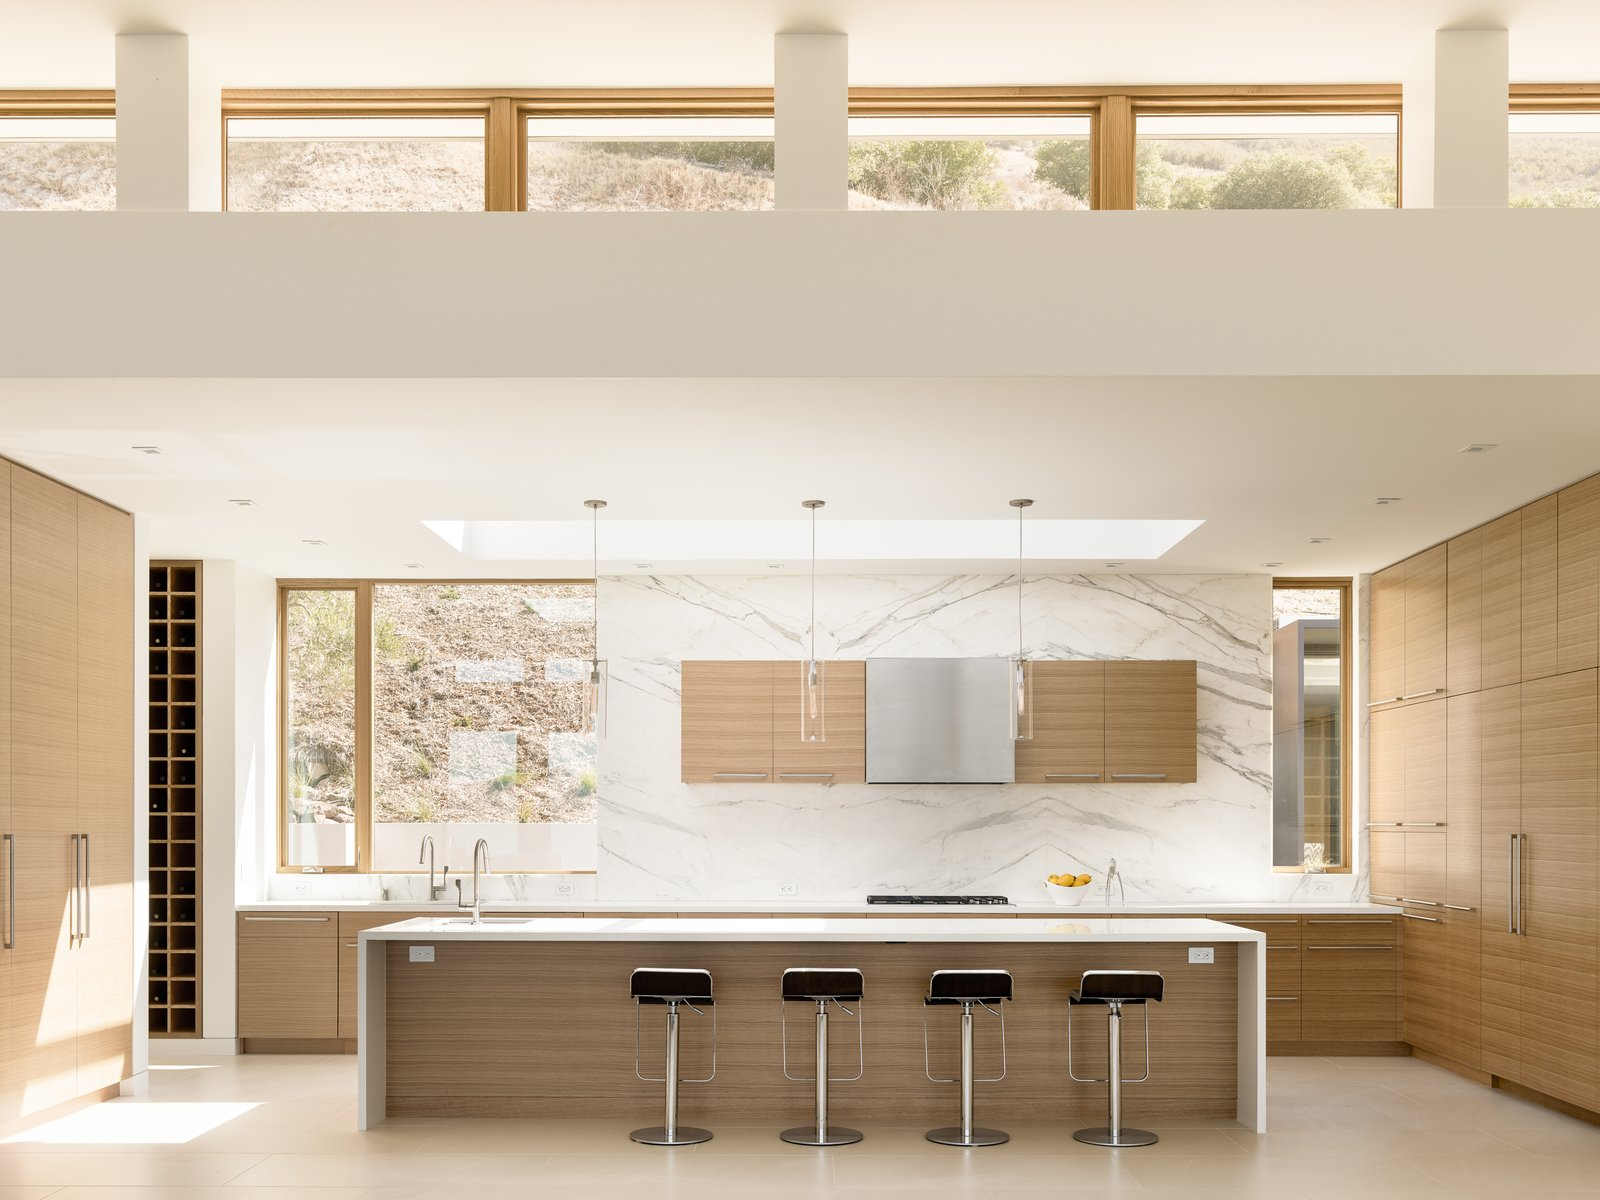 Tagged: Kitchen, Engineered Quartz Counter, Porcelain Tile Floor, Wood Cabinet, Ceiling Lighting, Marble Backsplashe, Pendant Lighting, Recessed Lighting, Refrigerator, Cooktops, Dishwasher, Wall Oven, Wine Cooler, Range Hood, and Undermount Sink.  Silverado by John Maniscalco Architecture